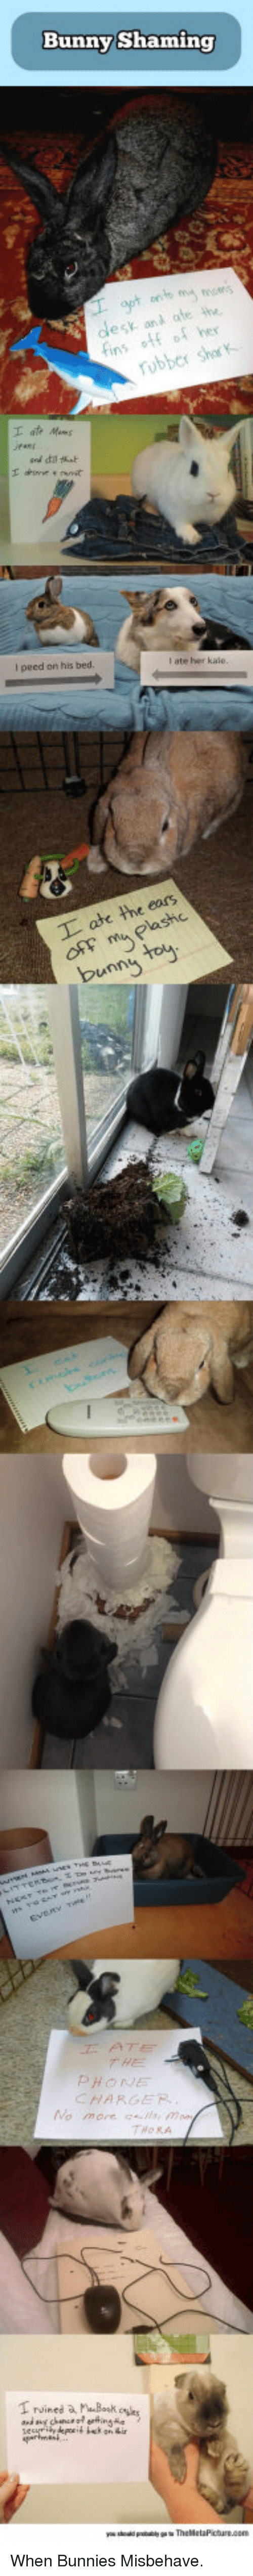 Bunnies, Phone, and Her: Bunny Shaming  onA ate ihe  otf of her  esy  robber shc  l peed on his bed.  PHONE  CHARGER <p>When Bunnies Misbehave.</p>